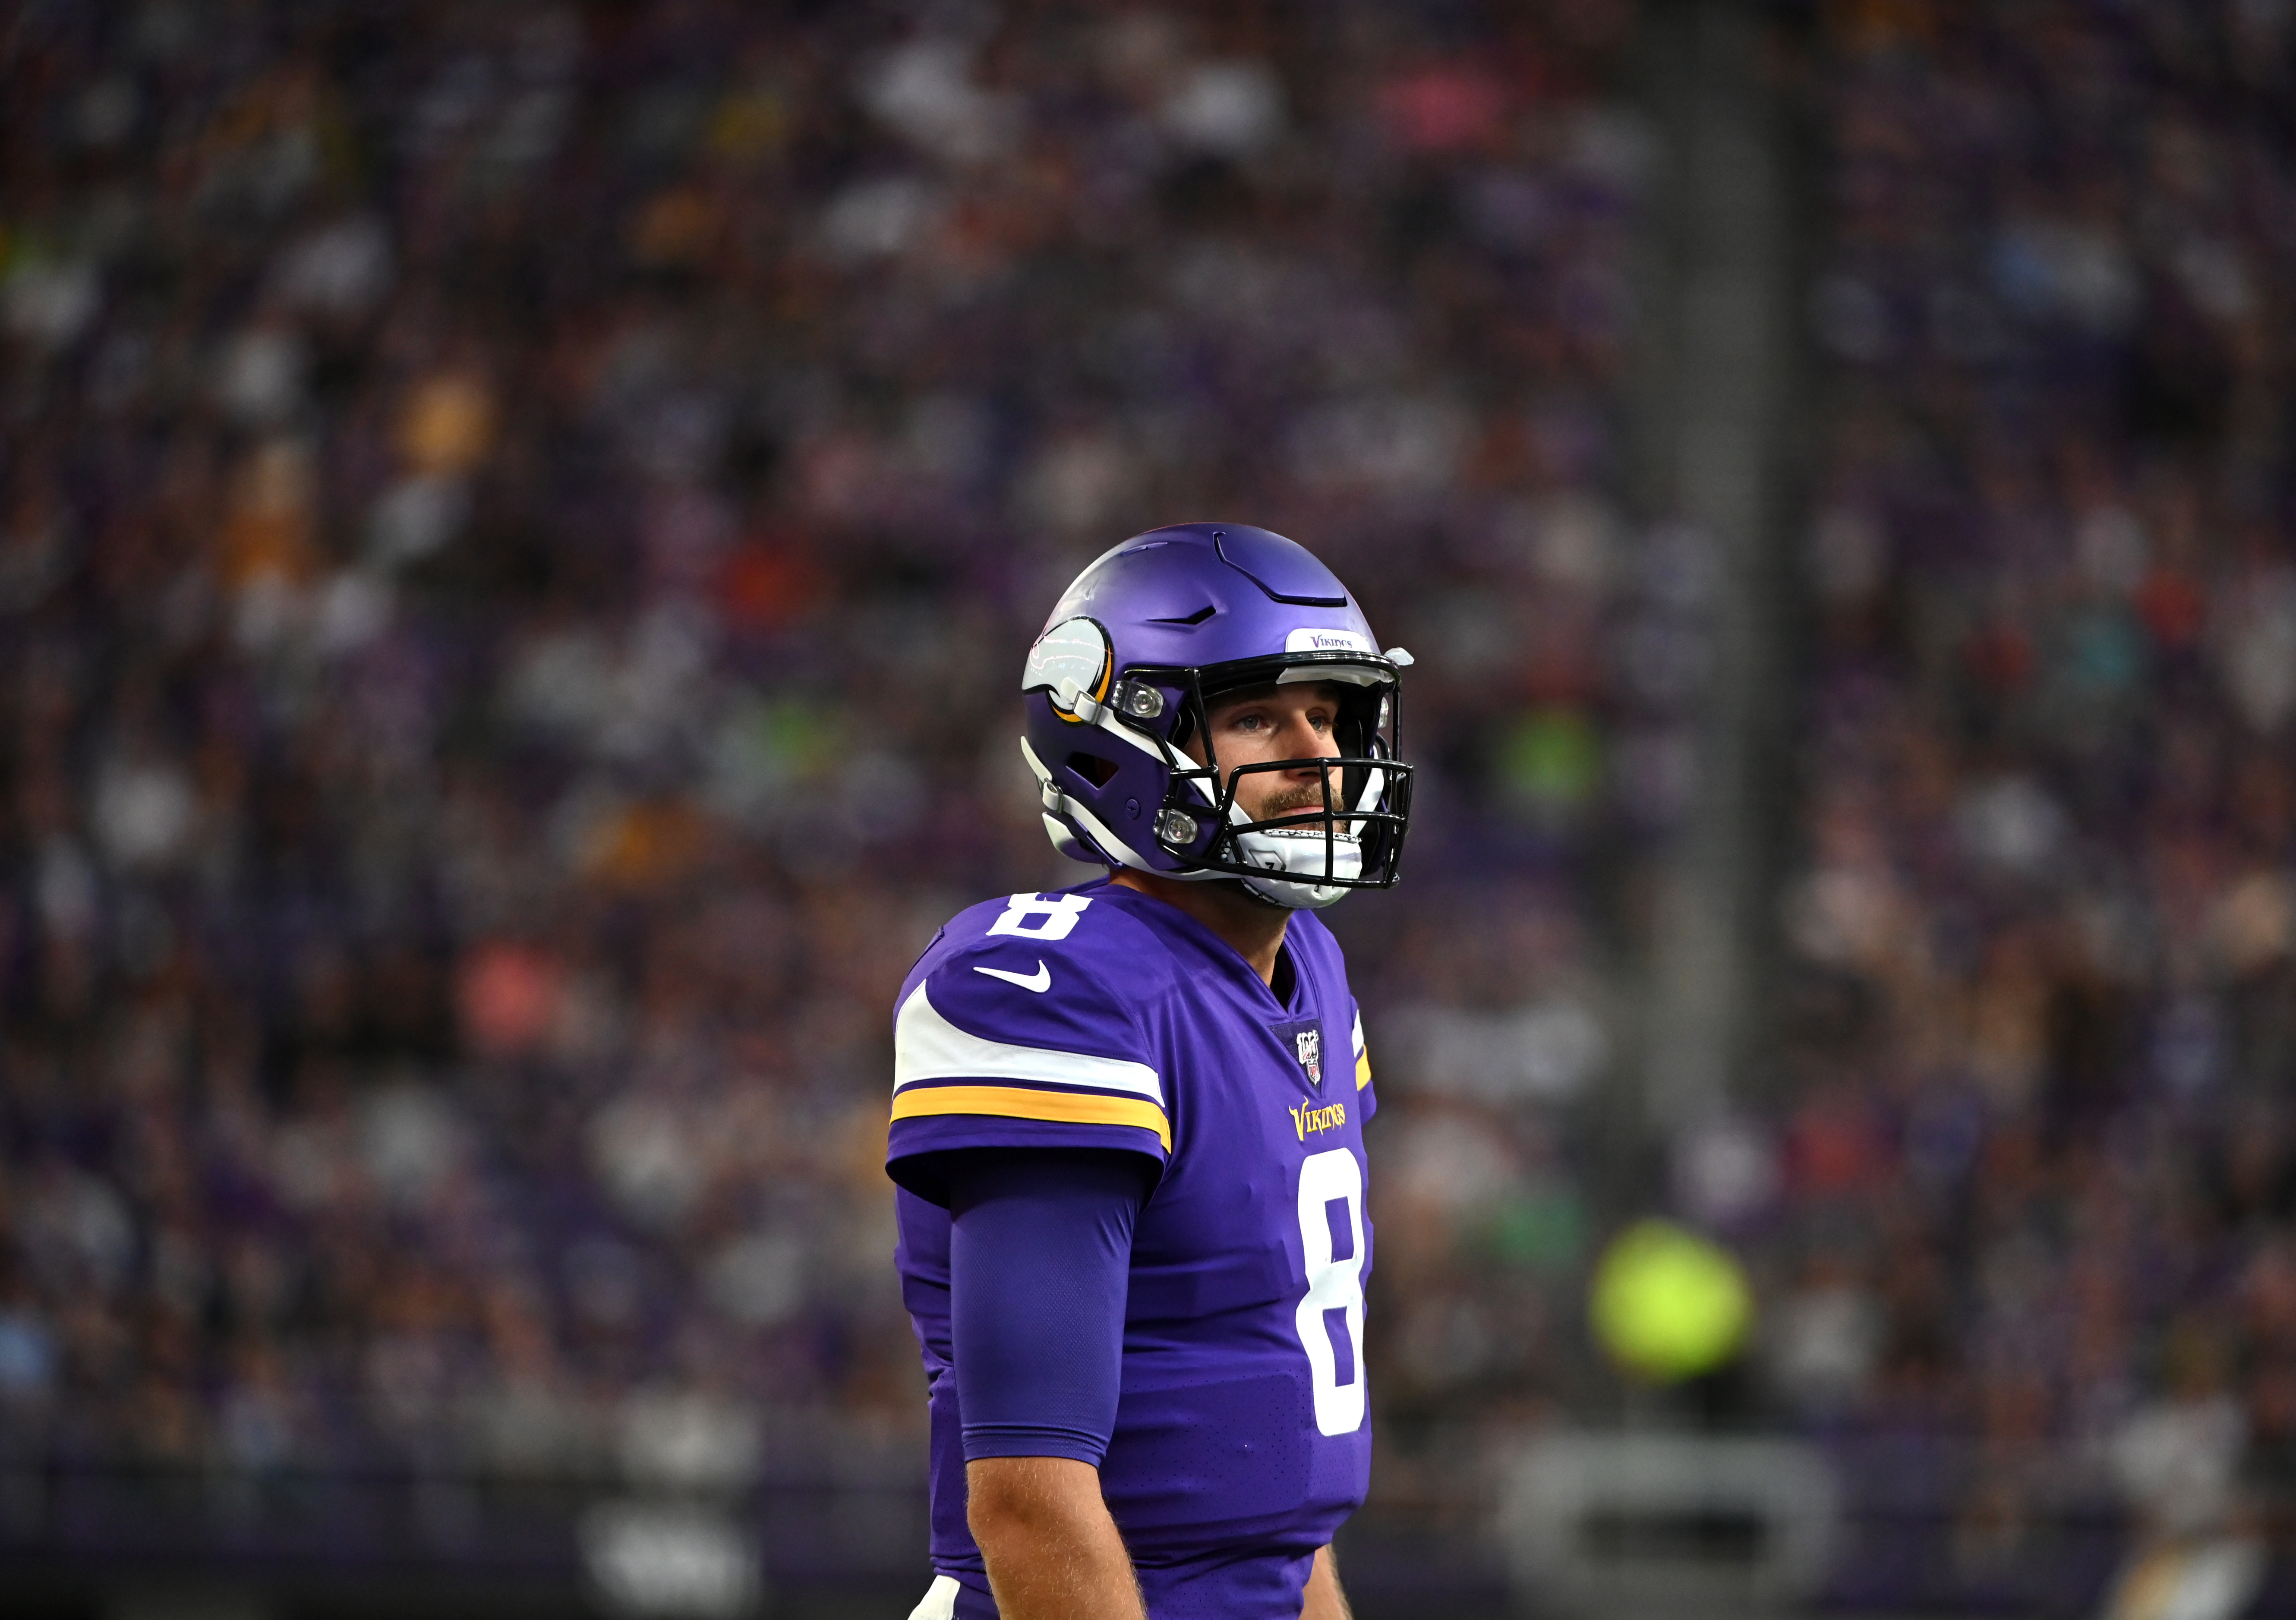 Ranking the Most Overrated & Underrated NFL Players in 2019